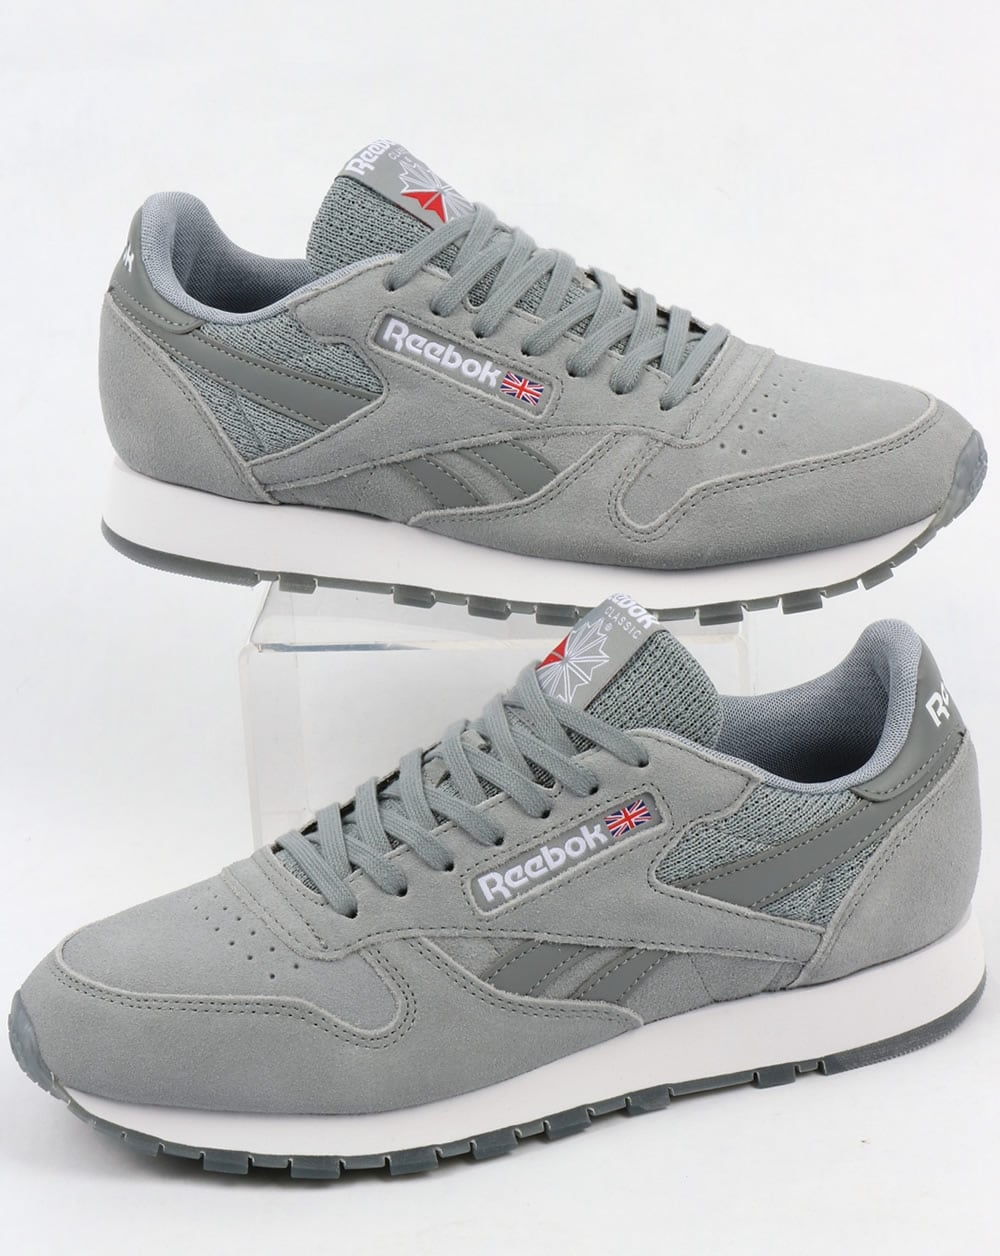 92c52293efb Reebok Reebok Classic Leather NM Trainers Flint Grey White